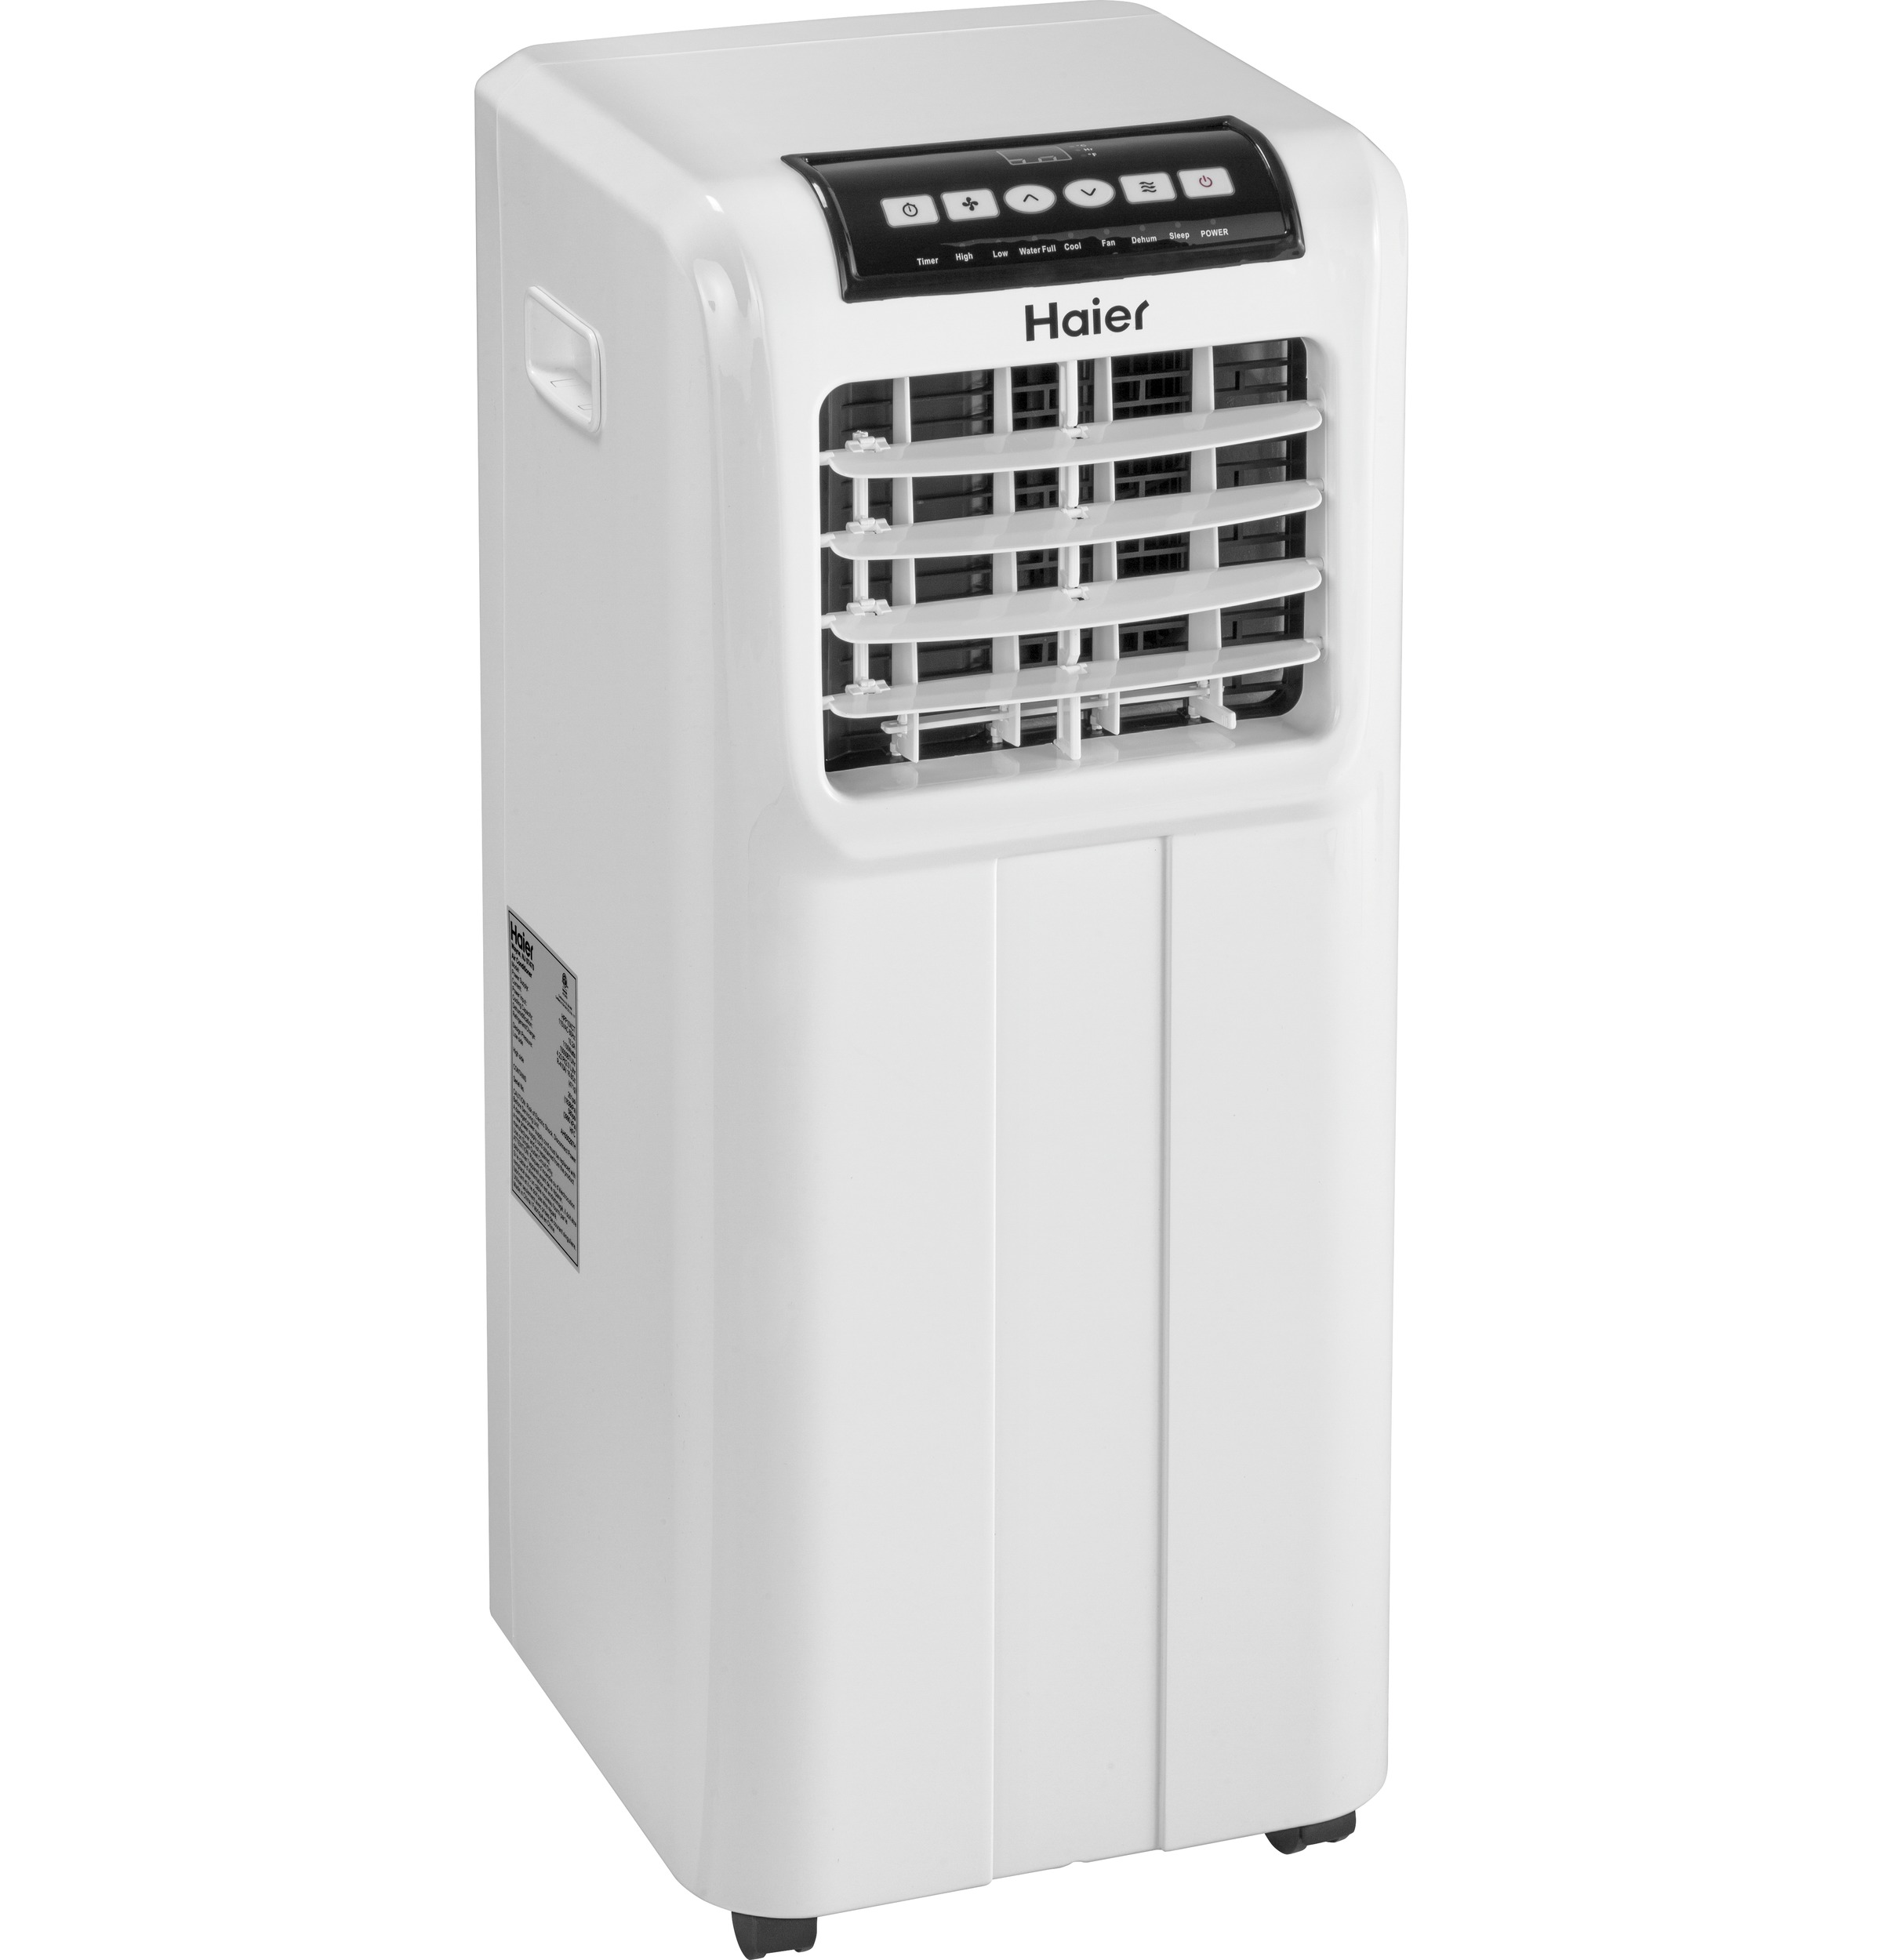 Hpp10xct Portable Air Conditioner Haier Appliances